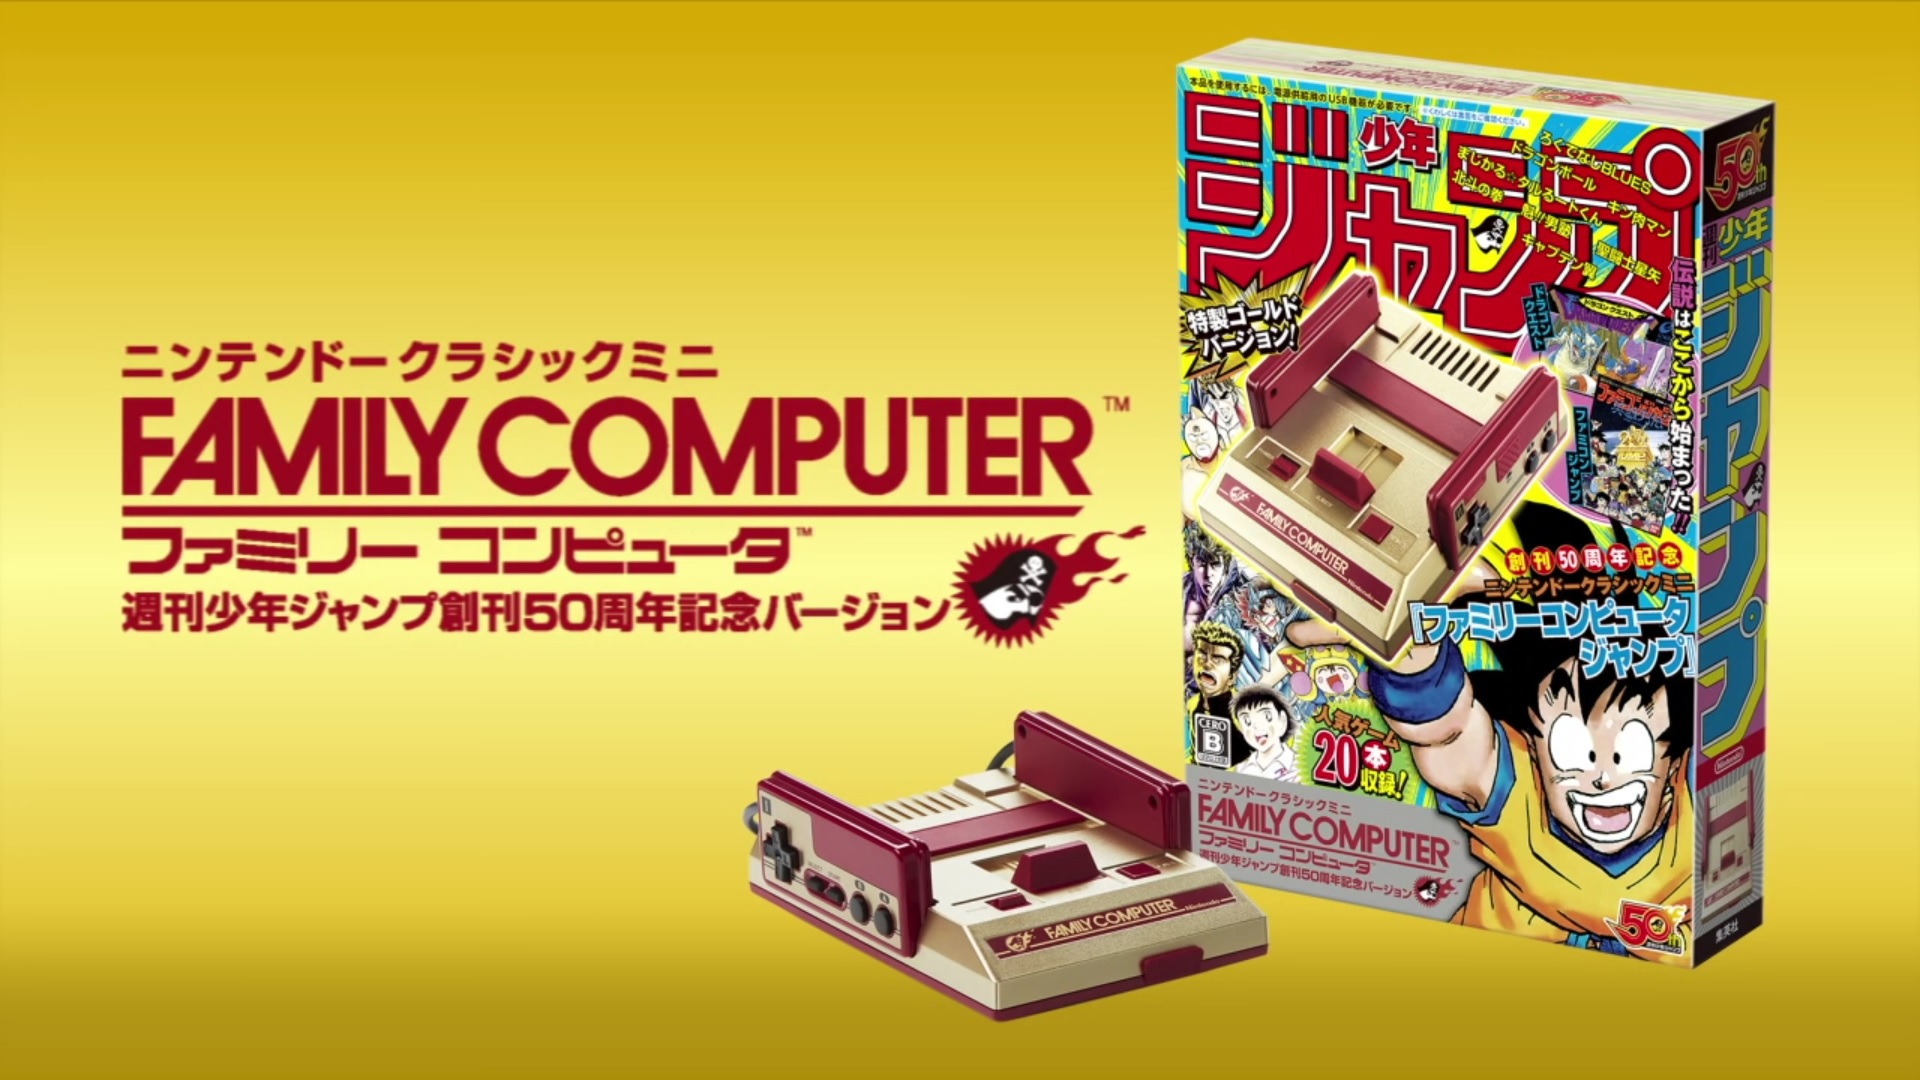 Here is a better look at Shonen's 50th anniversary Famicom Mini screenshot